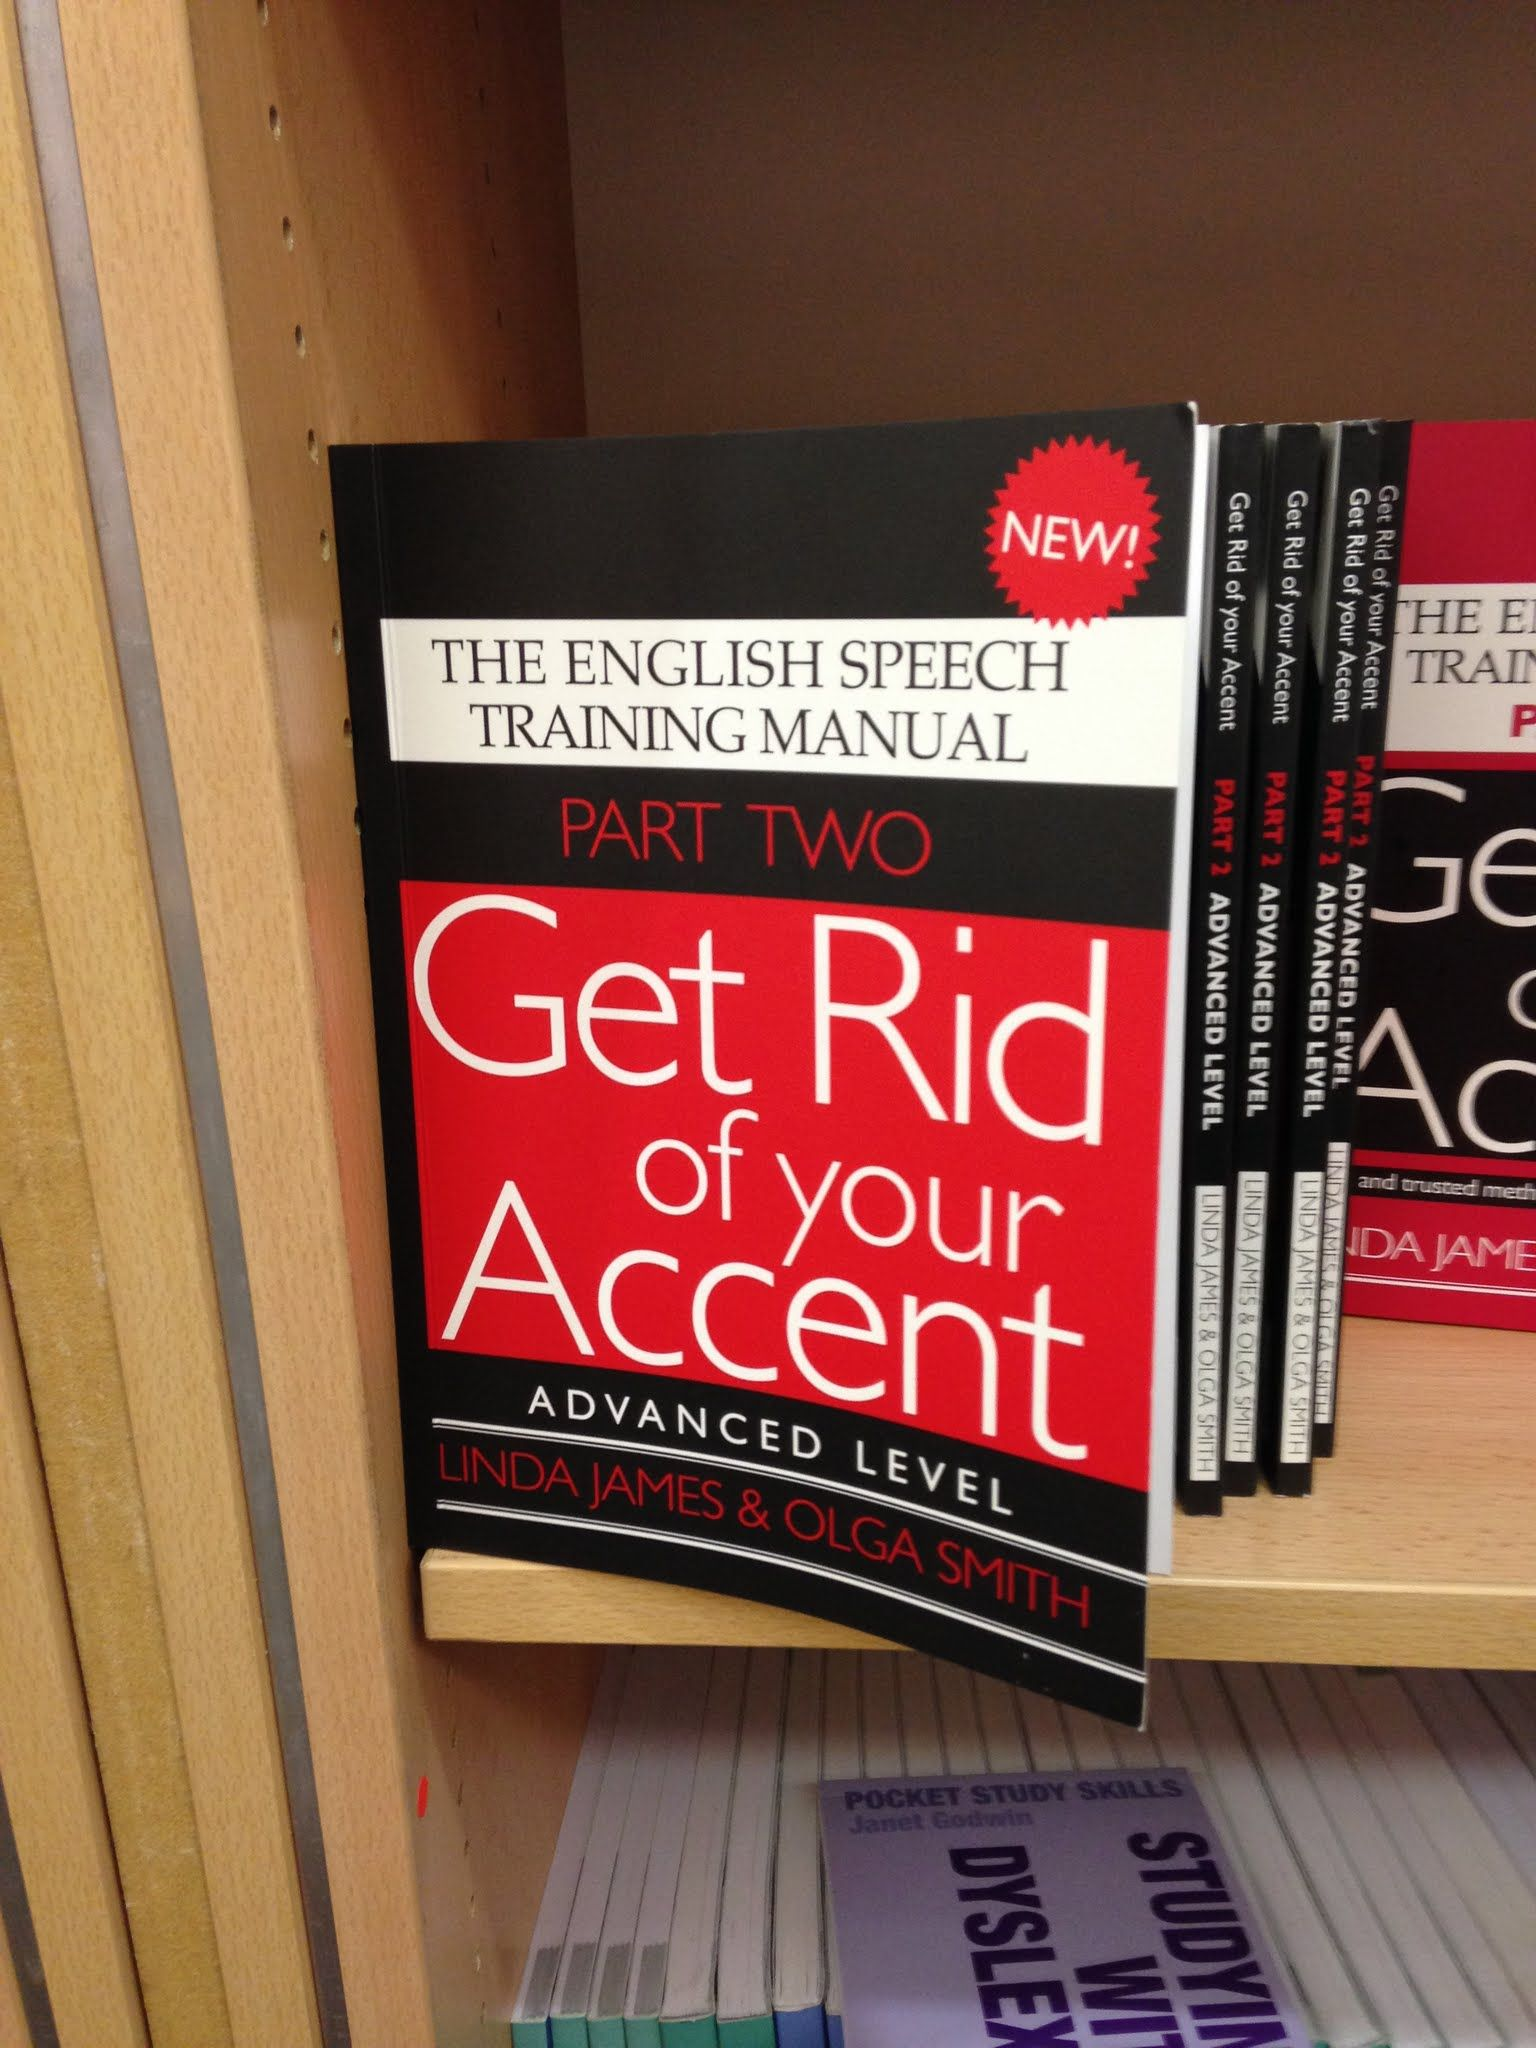 How To Get Rid Of Spanish Accent When Speaking English